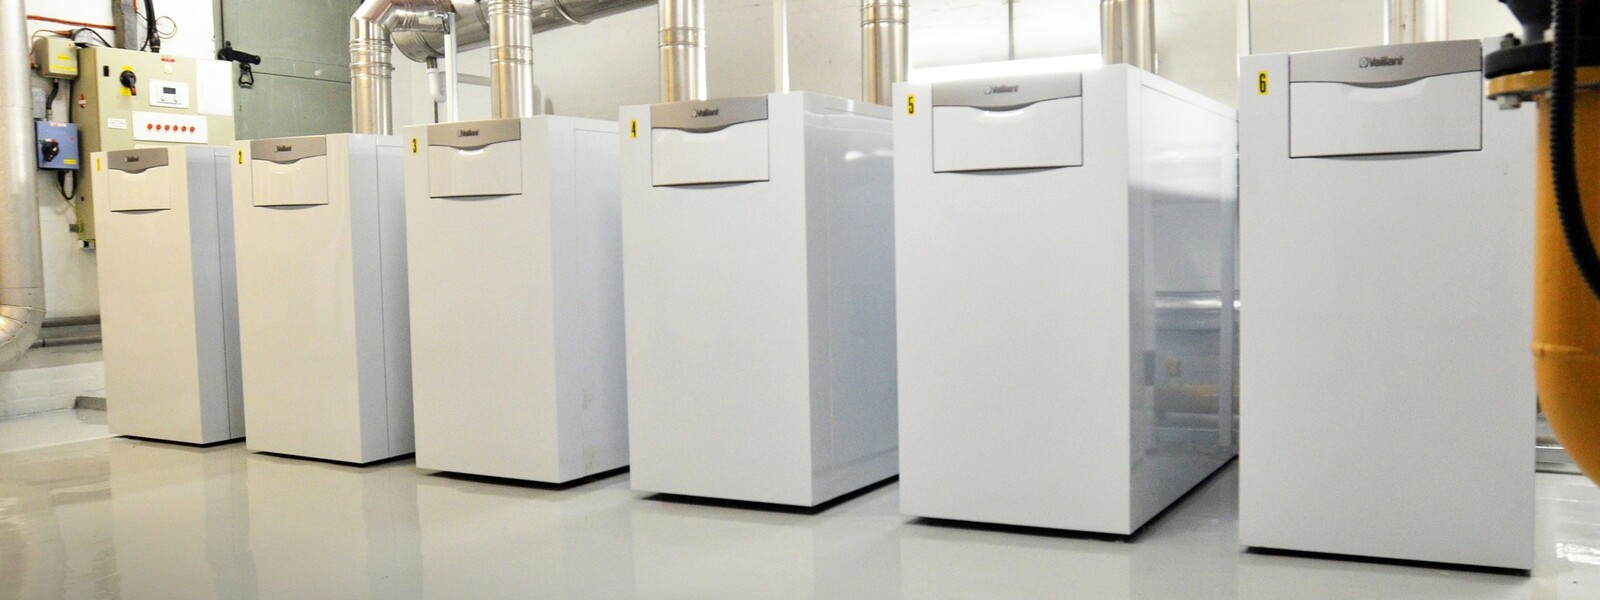 https://www.vaillant.co.uk/images/products/boilers/ecocraft/floor-standing-ecocraft-1142473-format-24-9@1600@desktop.jpg